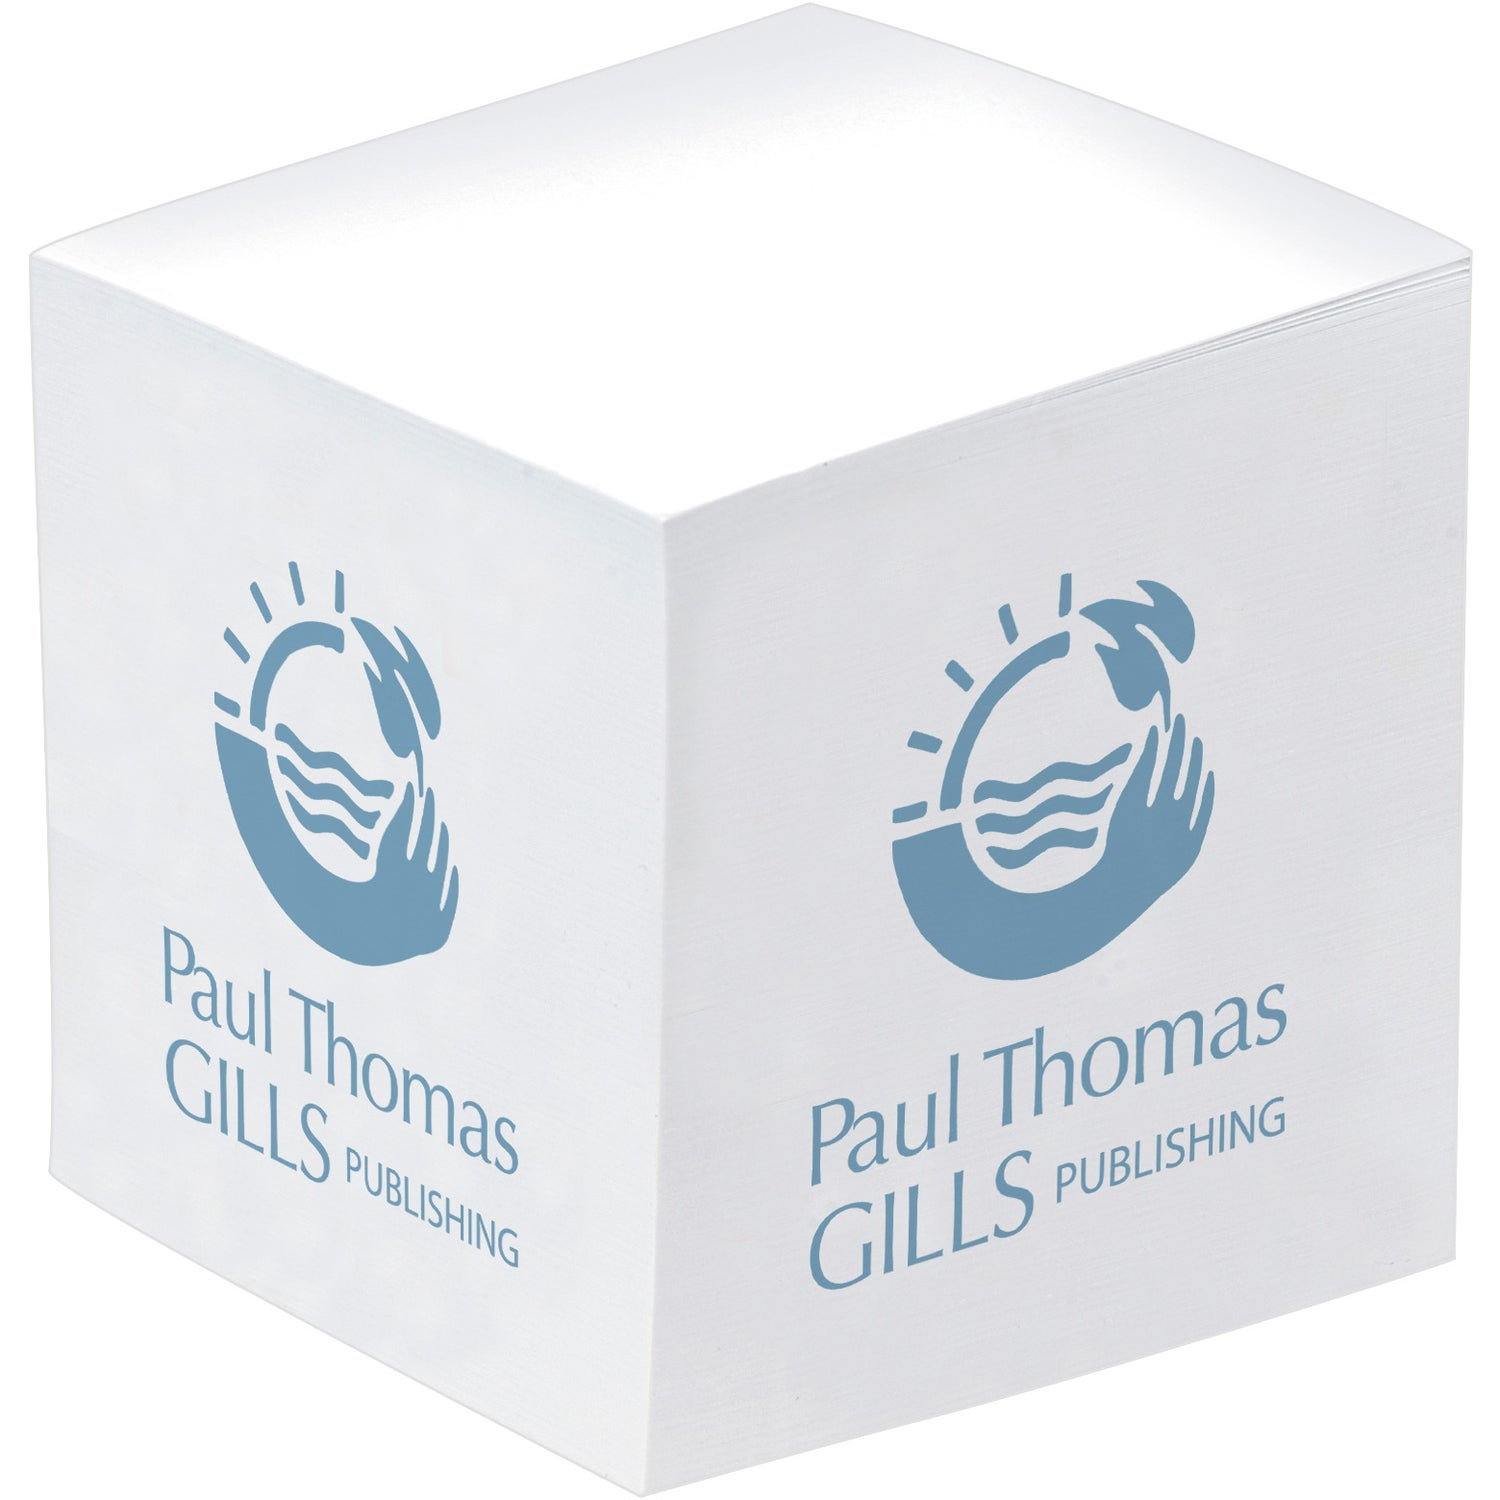 Promotional Non Adhesive Paper Cubes with Custom Logo for $2.27 Ea.